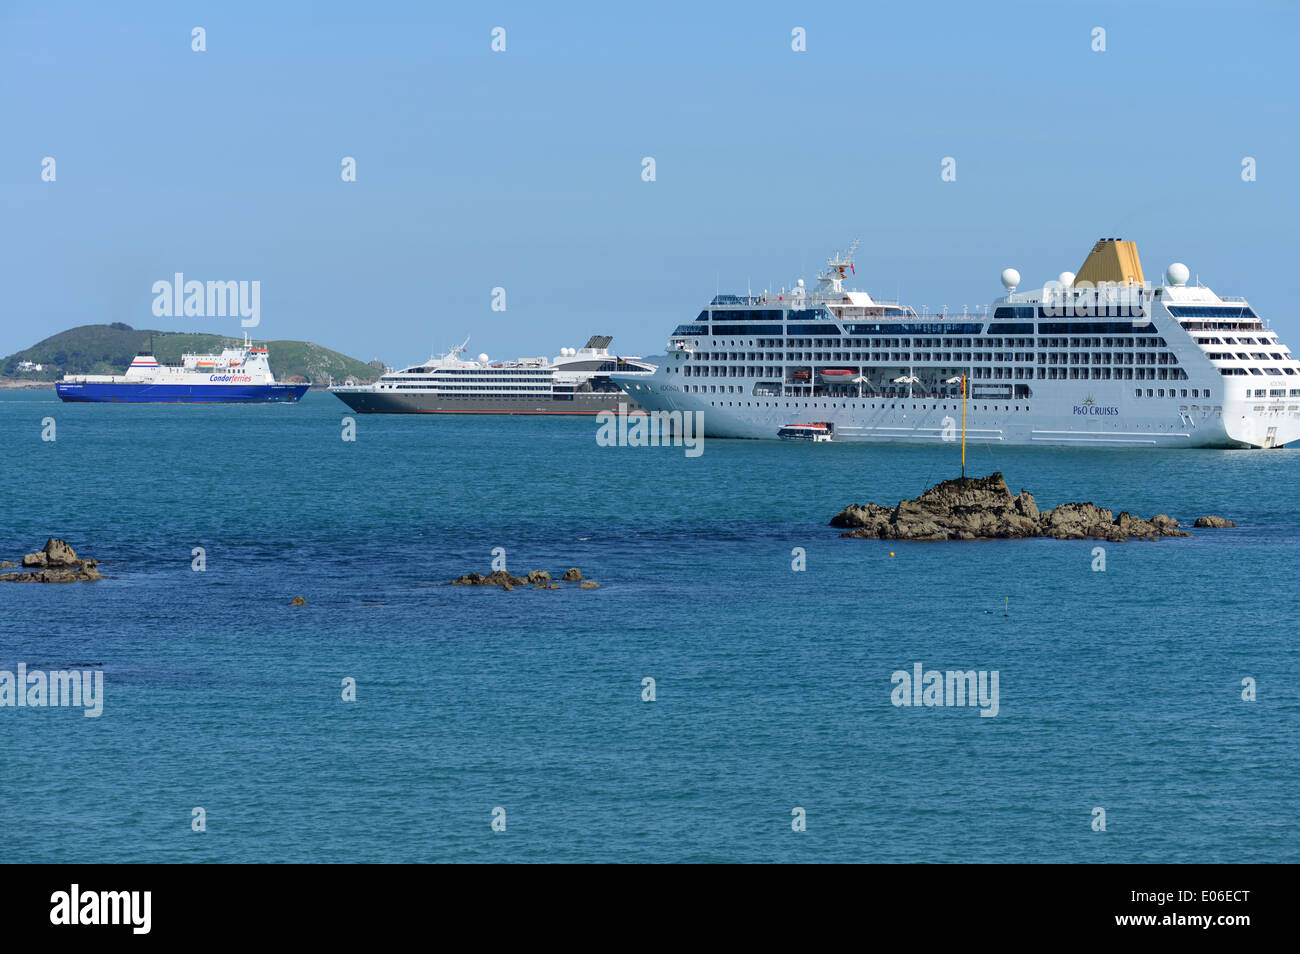 Cruise ships and a cross channel ferry off the coast of Guernsey, Channel Islands - Stock Image